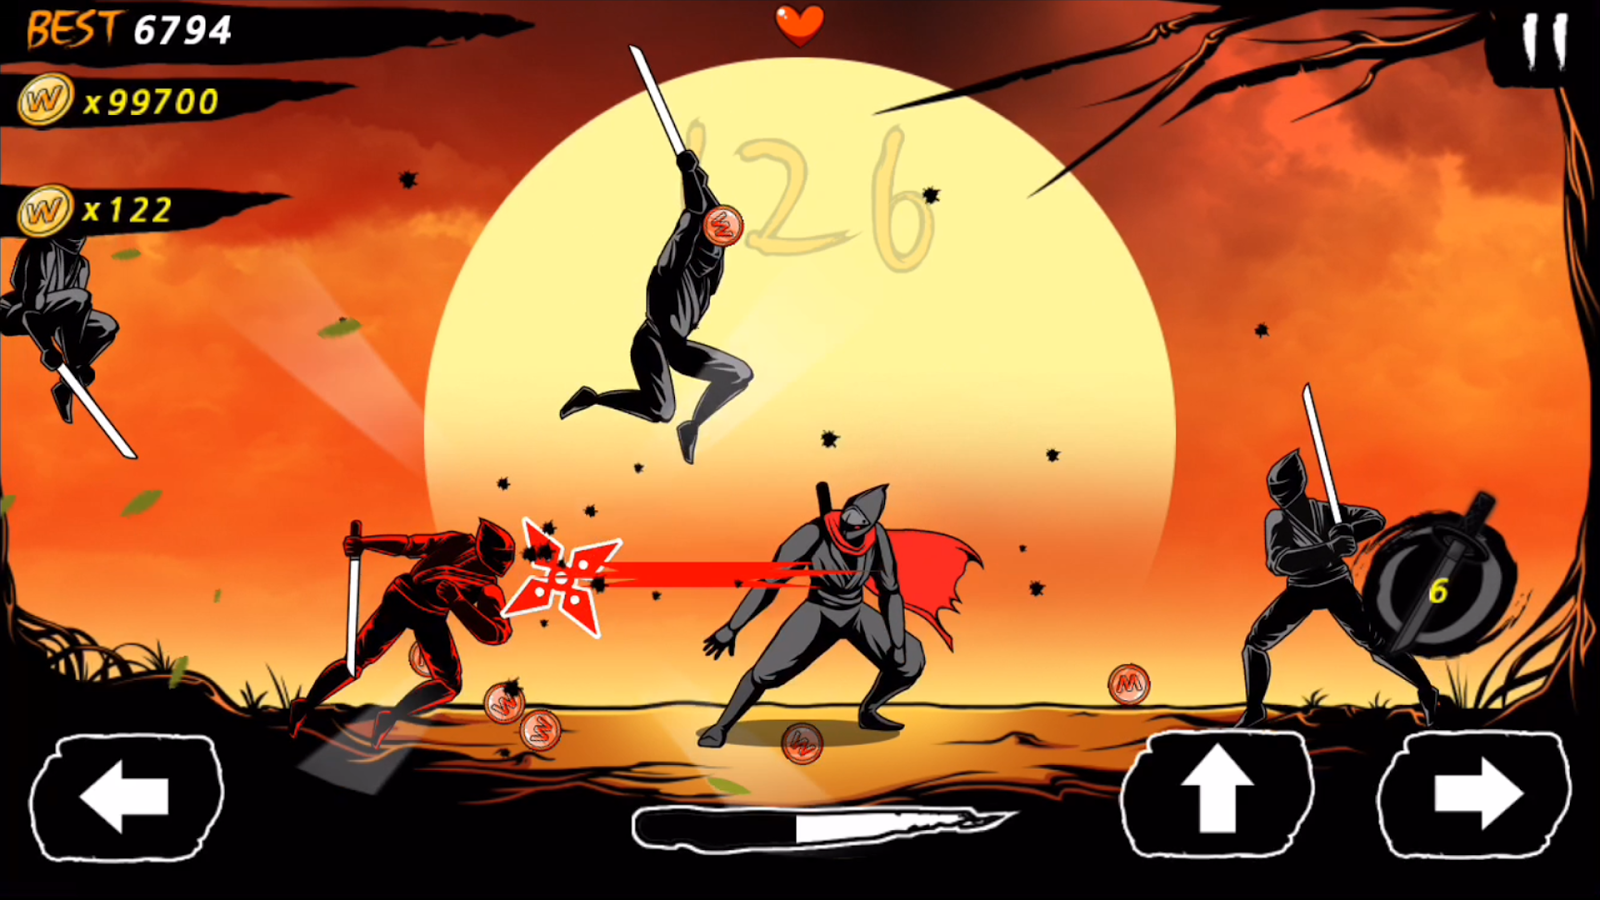 World Of Blade Zombie Slasher MOD APK terbaru